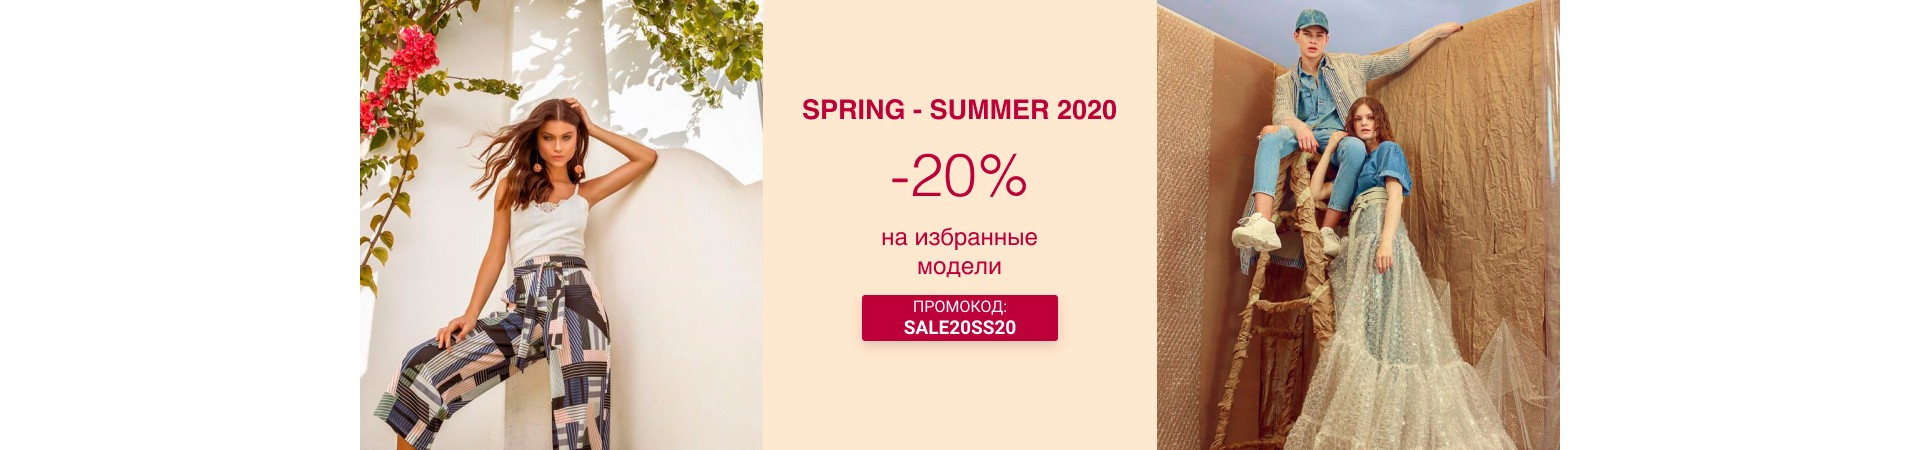 SS'20 20 off